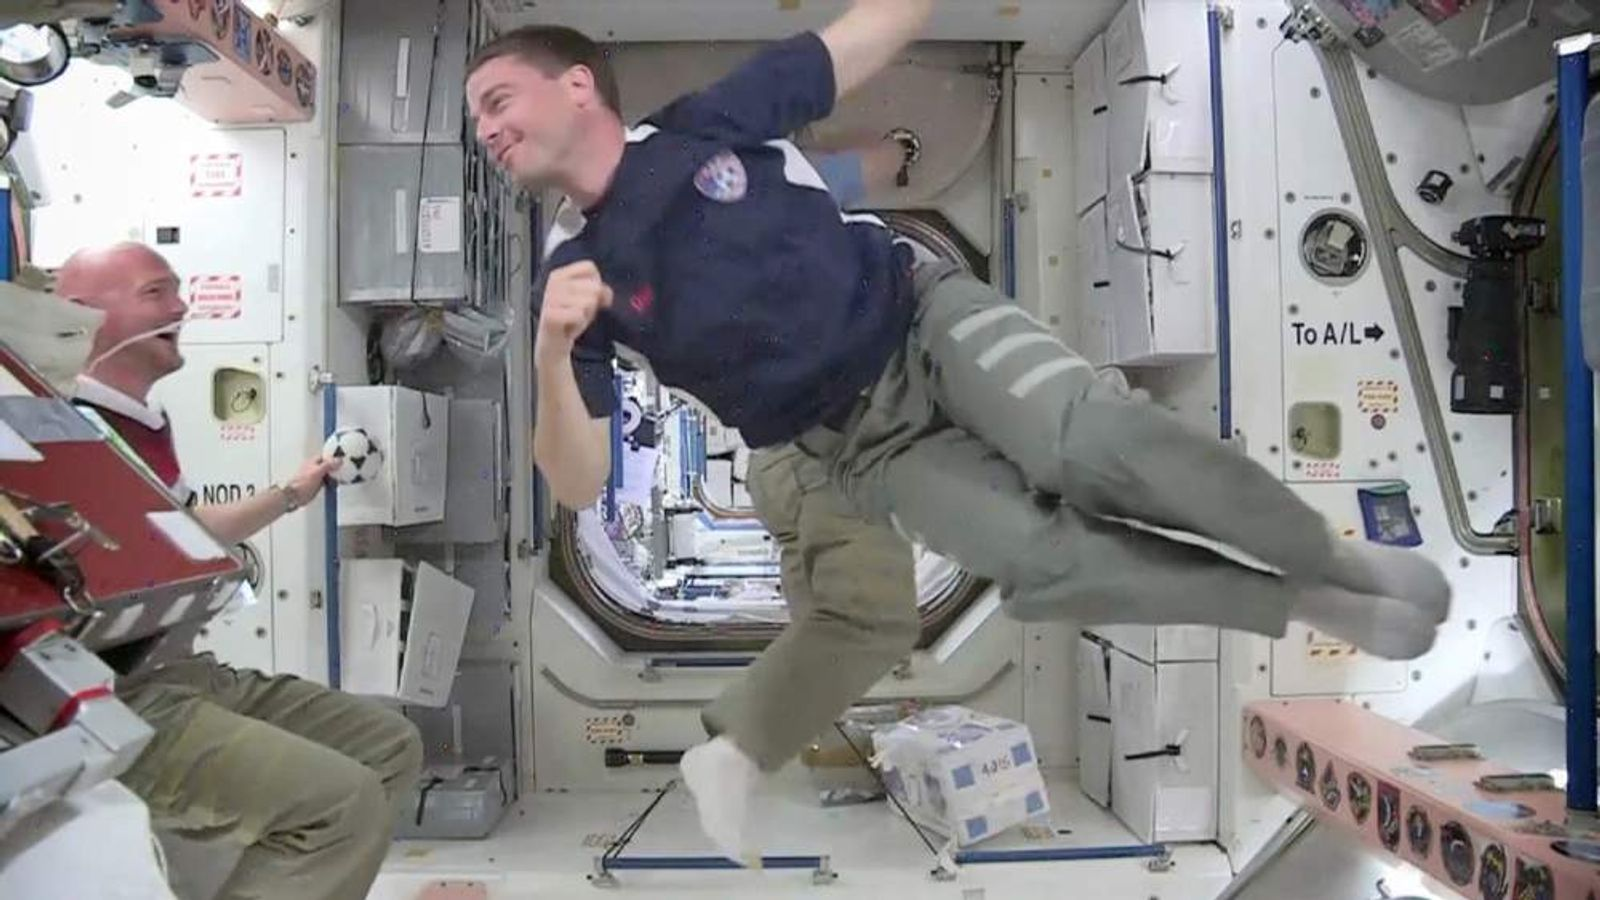 Astronauts on space station play football ahead of USA Germany World Cup game